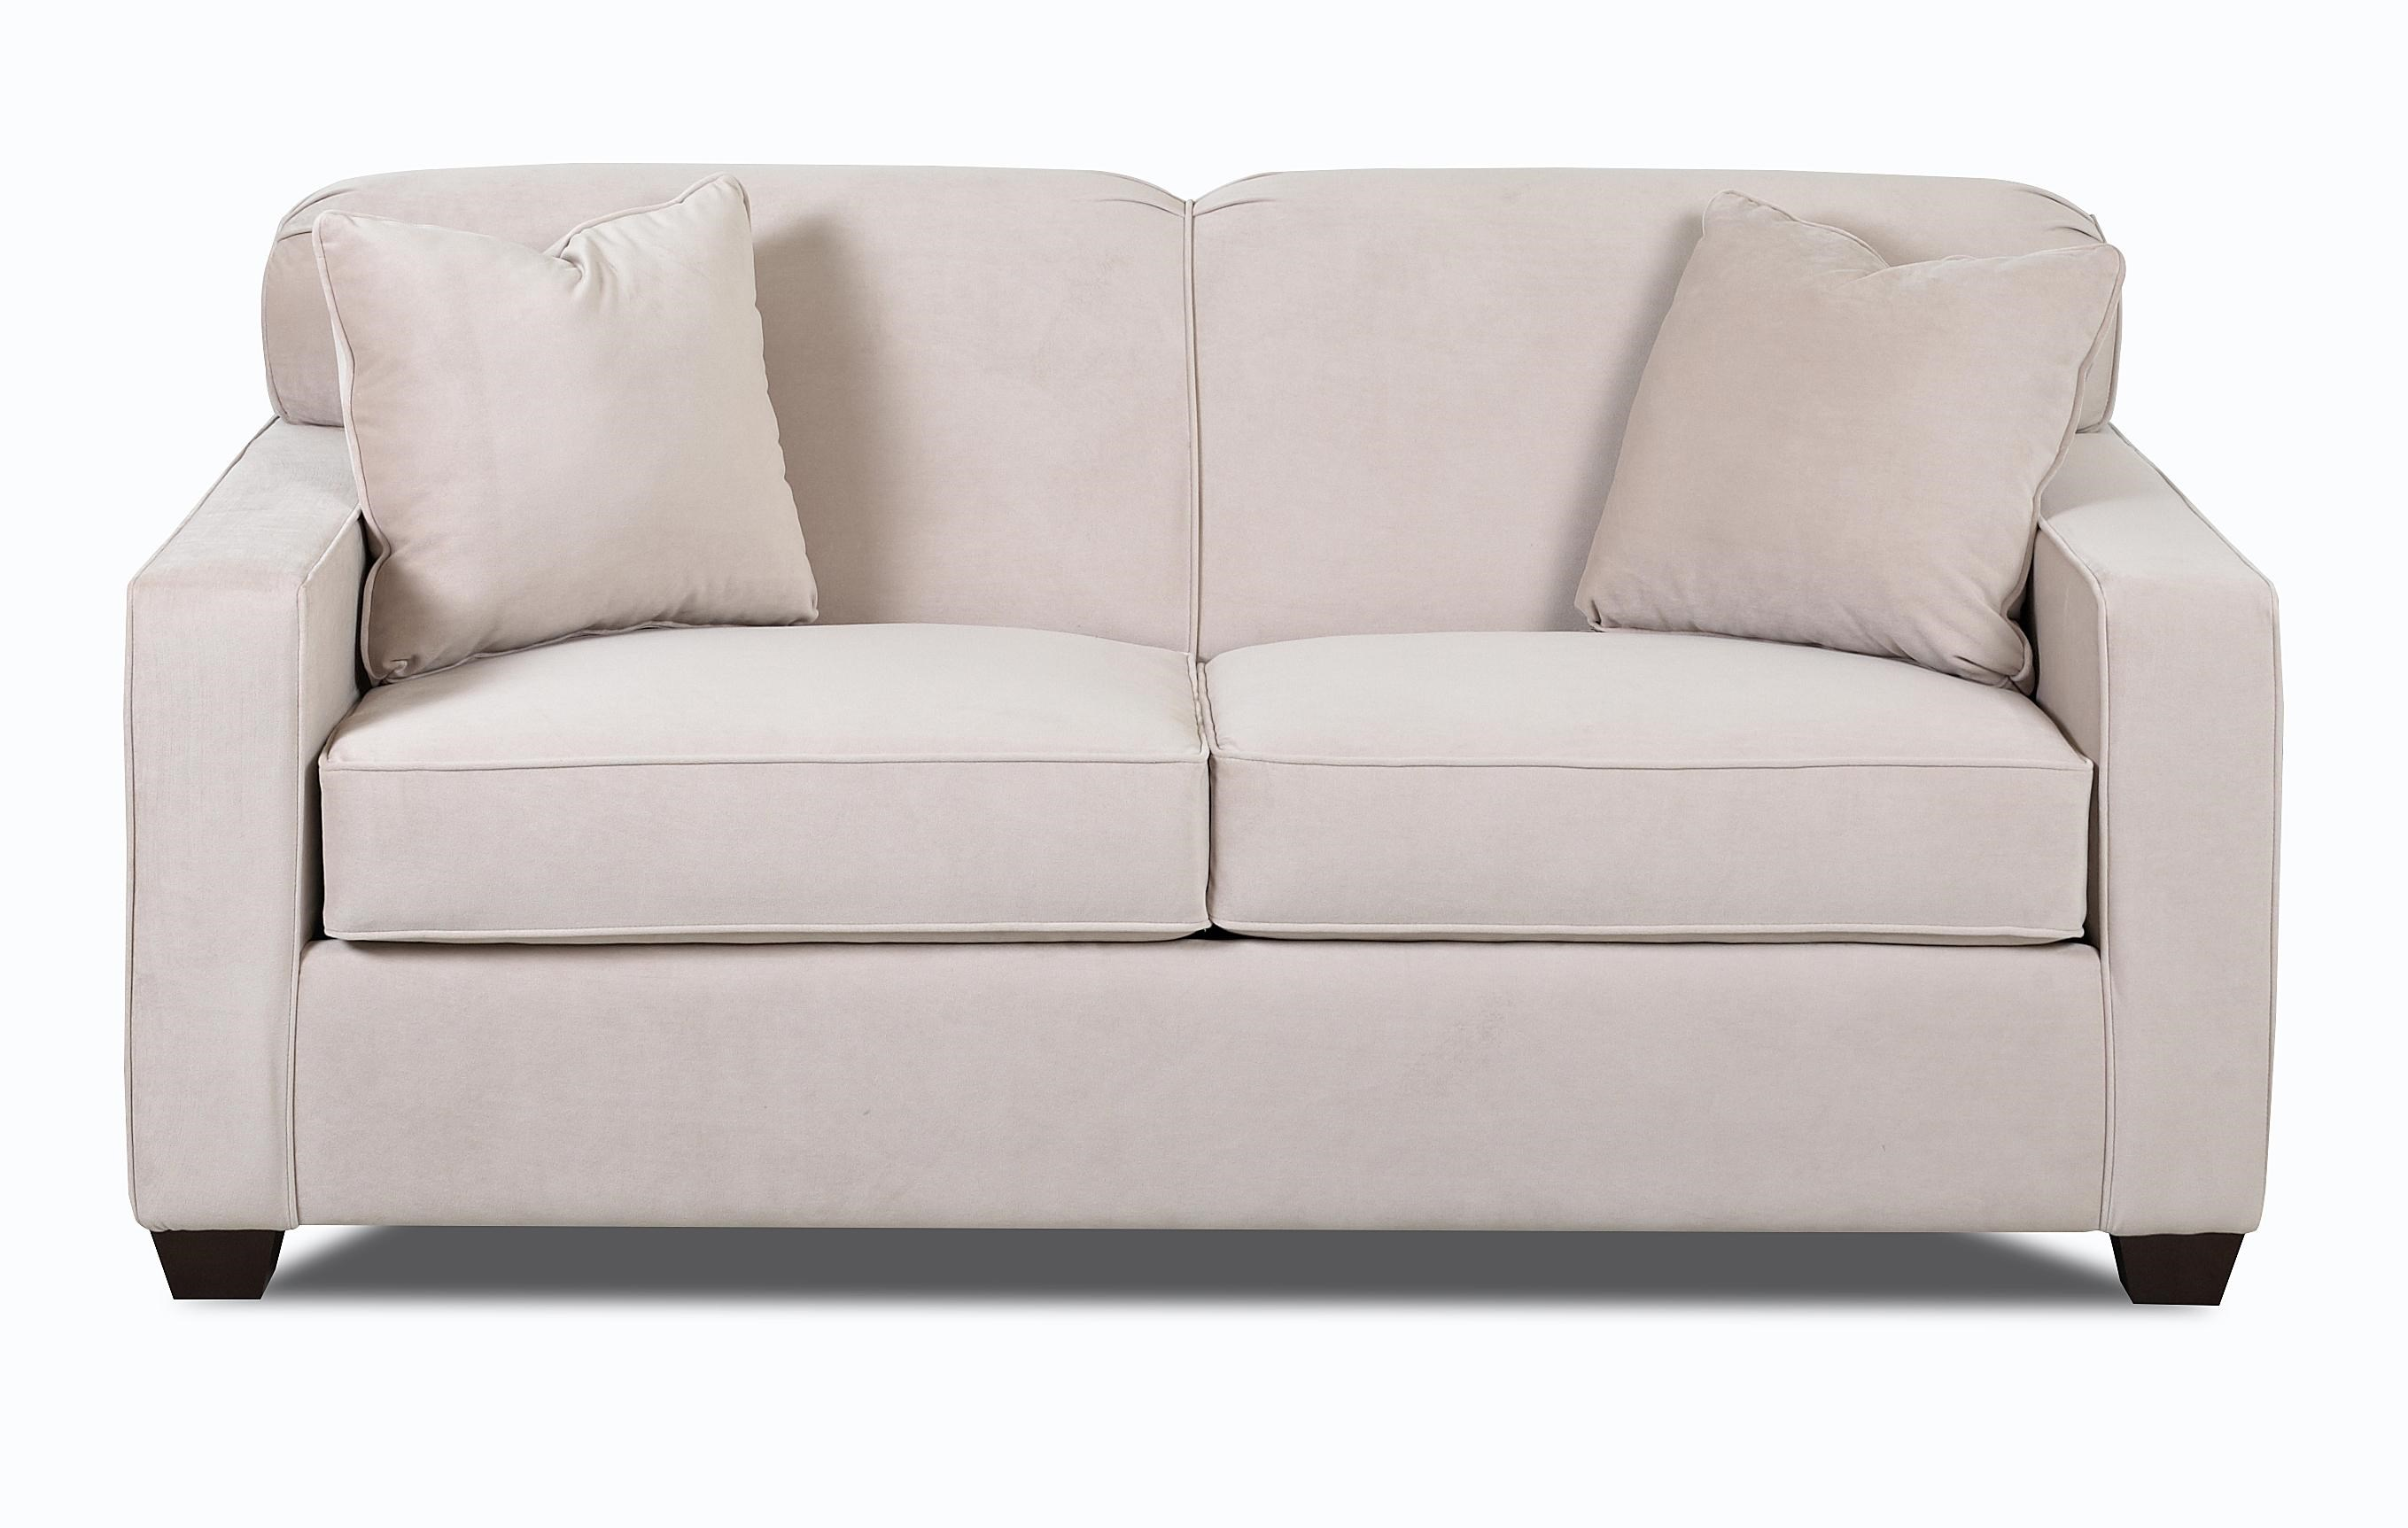 - Klaussner Gillis Regular Sleeper Sofa With Enso Memory Foam